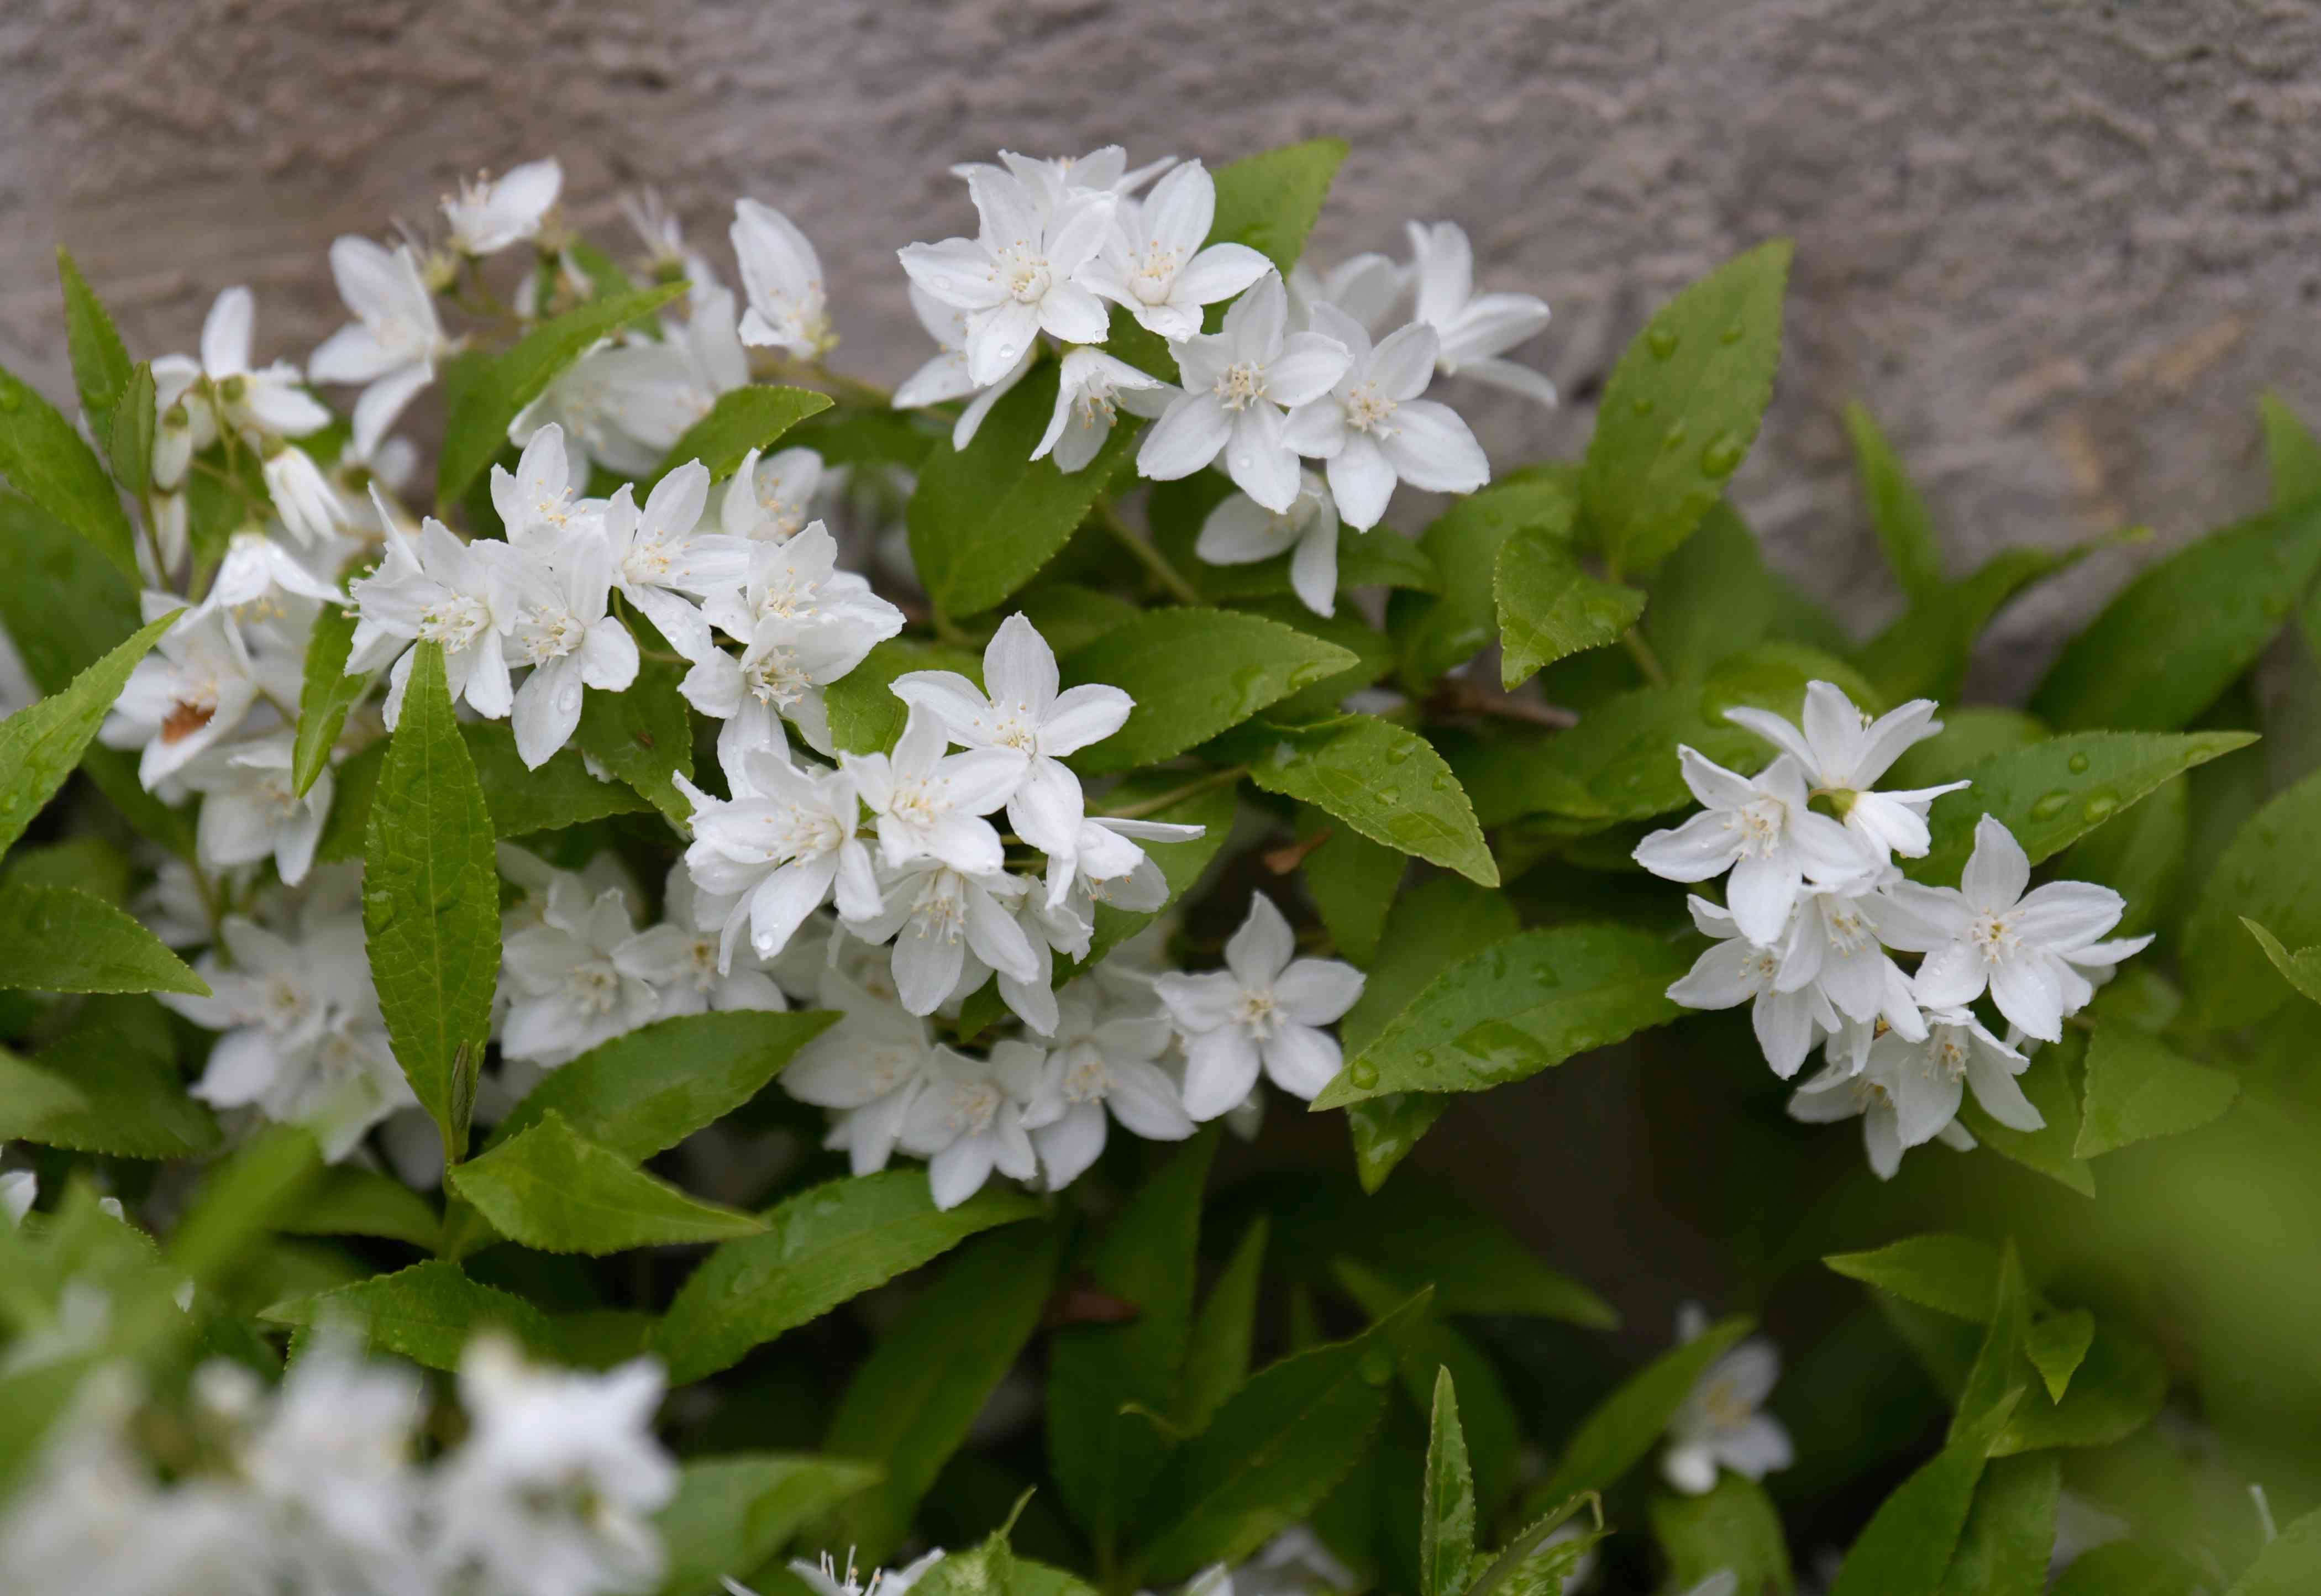 Dwarf Deutzia 'Nikko' shrub with clusters of double white blooms surrounded by leaves